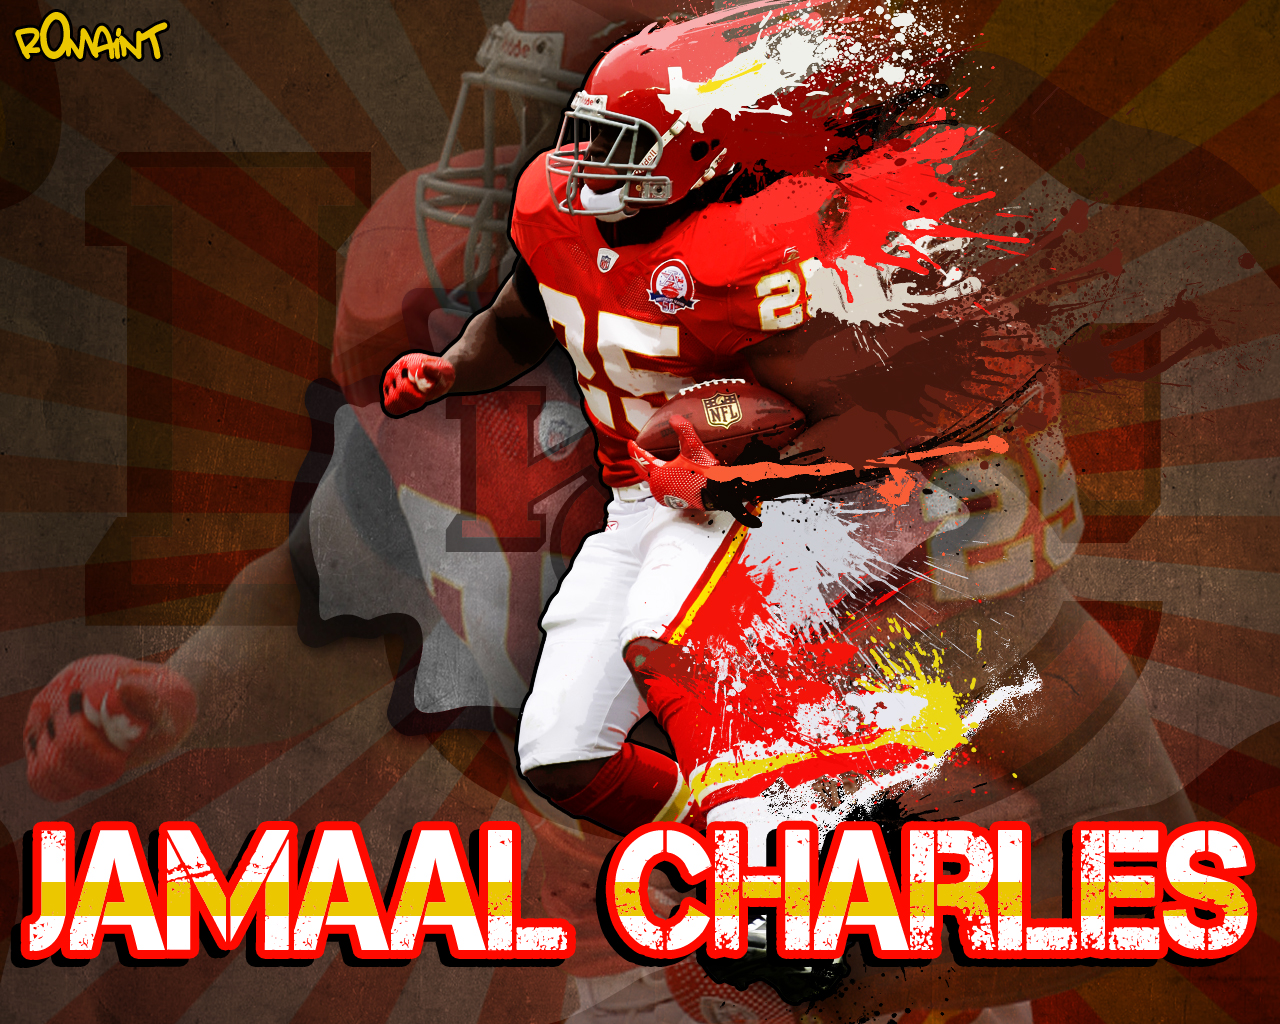 kansas city chiefs wallpaper collection sports geekery